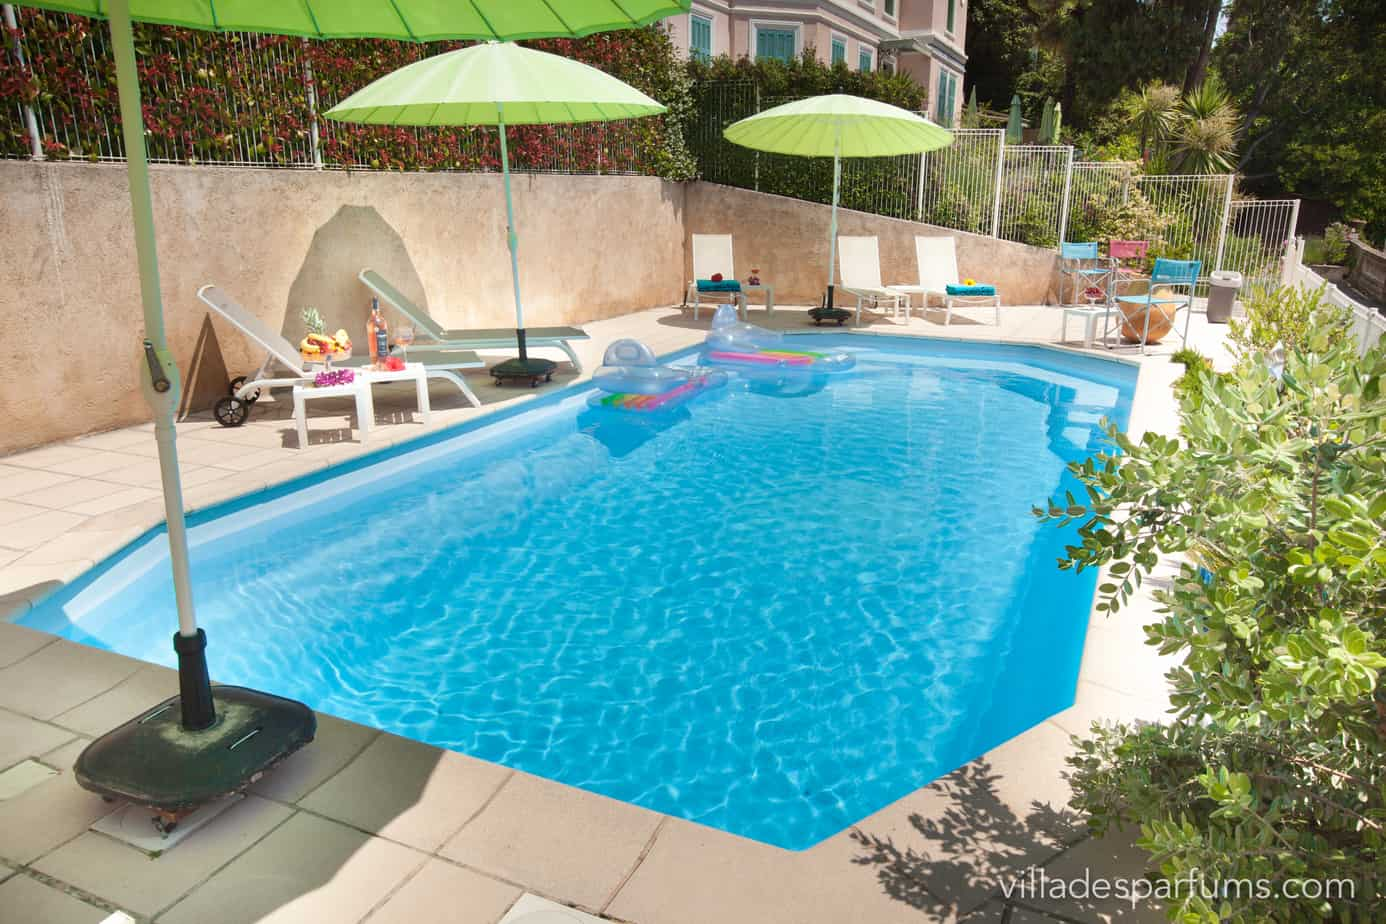 7 Reasons why you'll LOVE our Pool